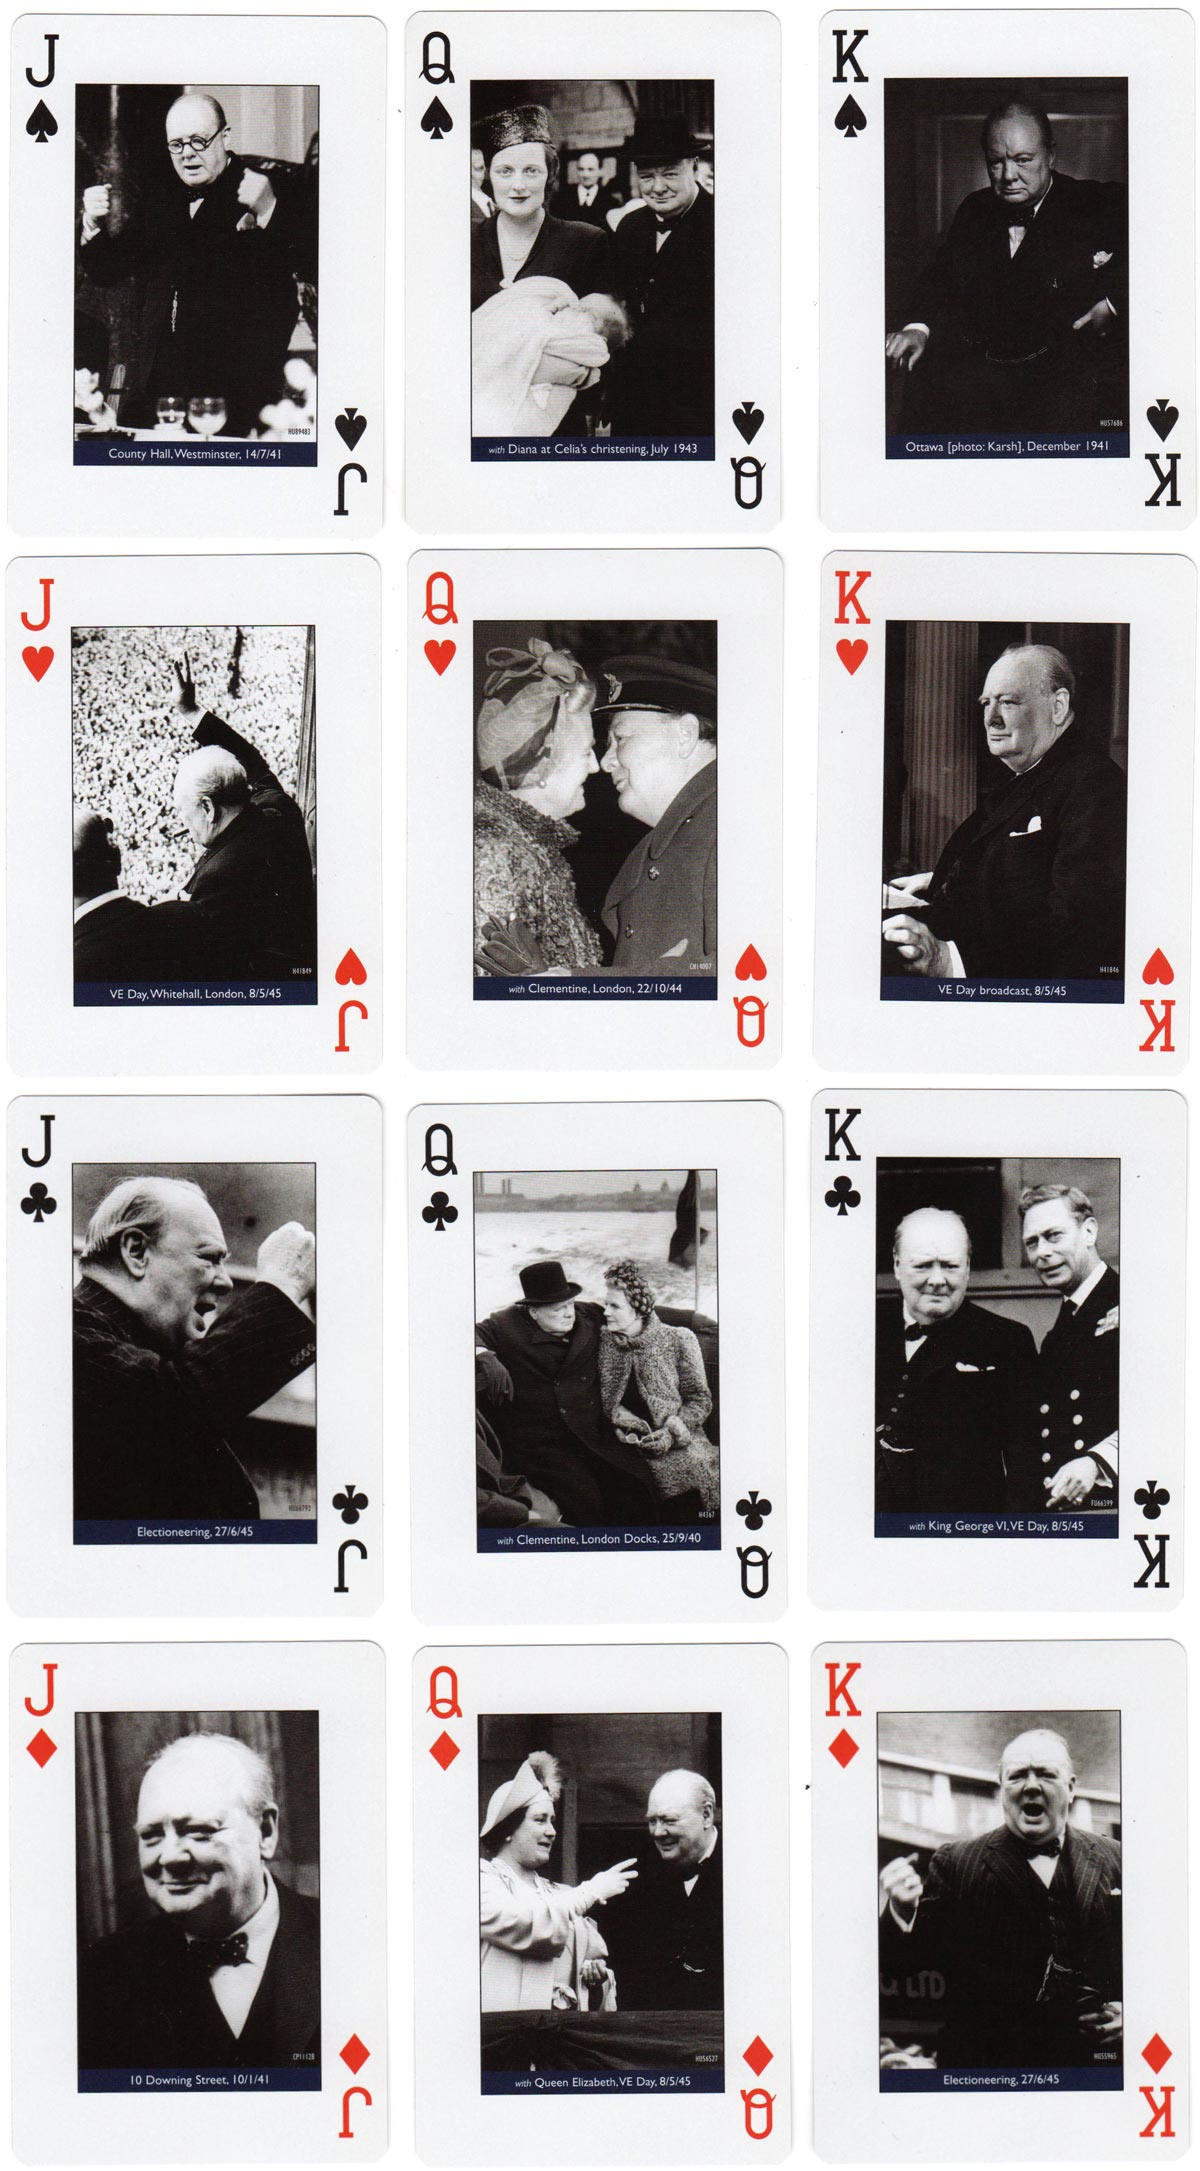 Churchill 'Walking with Destiny' playing cards published by the Imperial War Museum, London